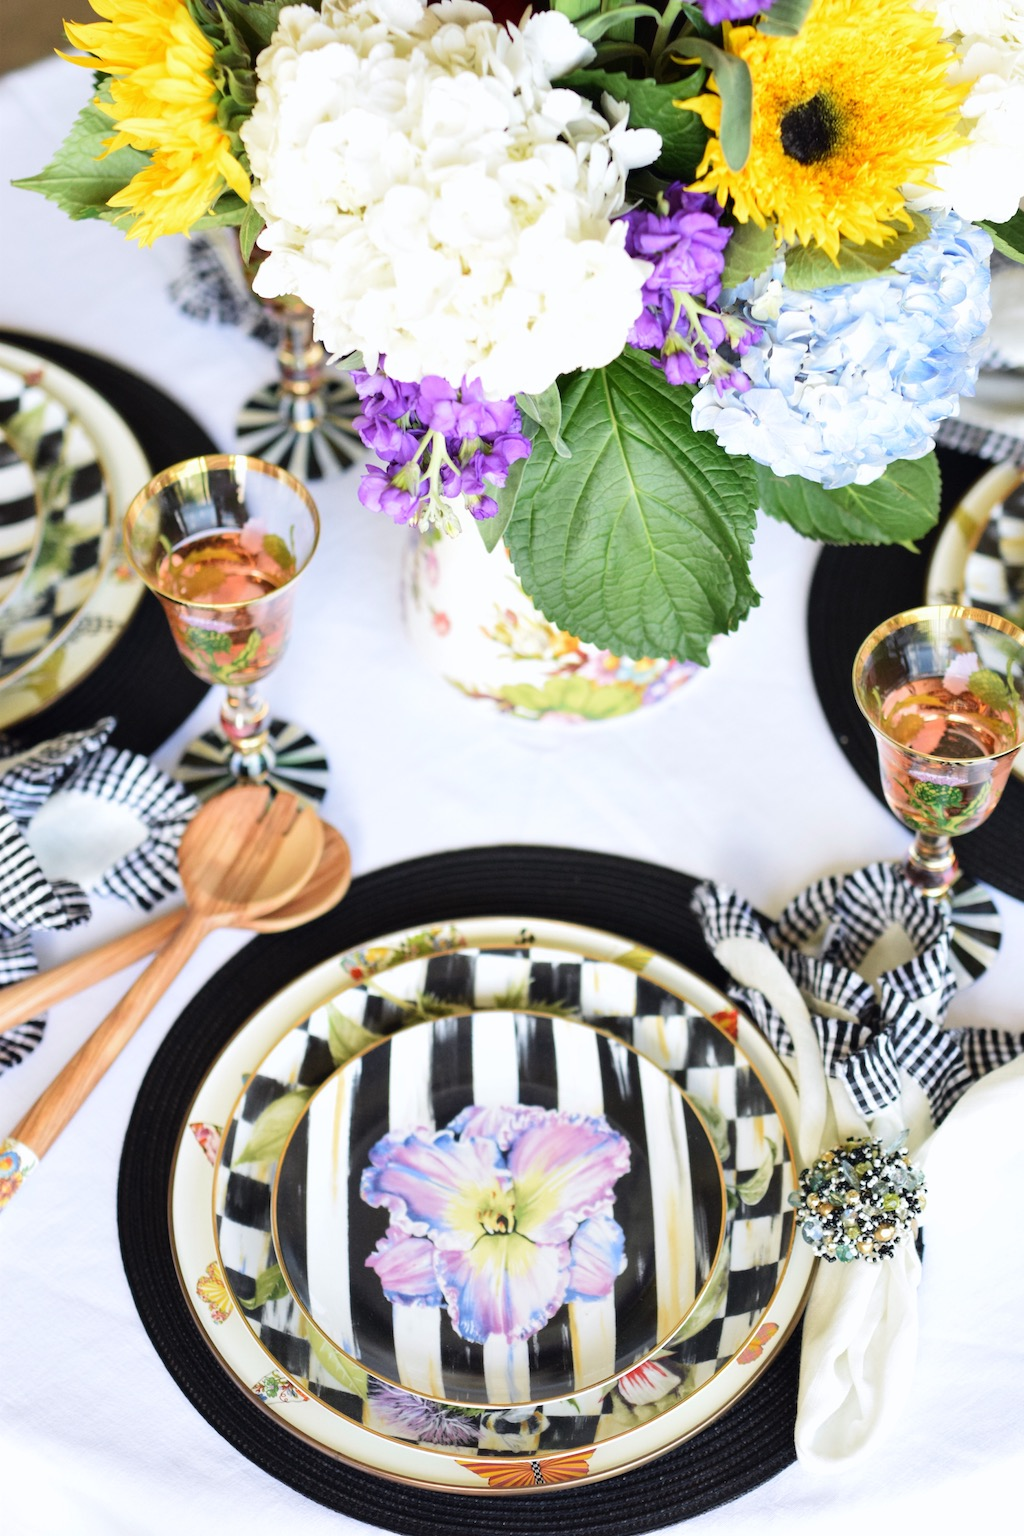 Summertime Entertaining With MacKenzie-Childs